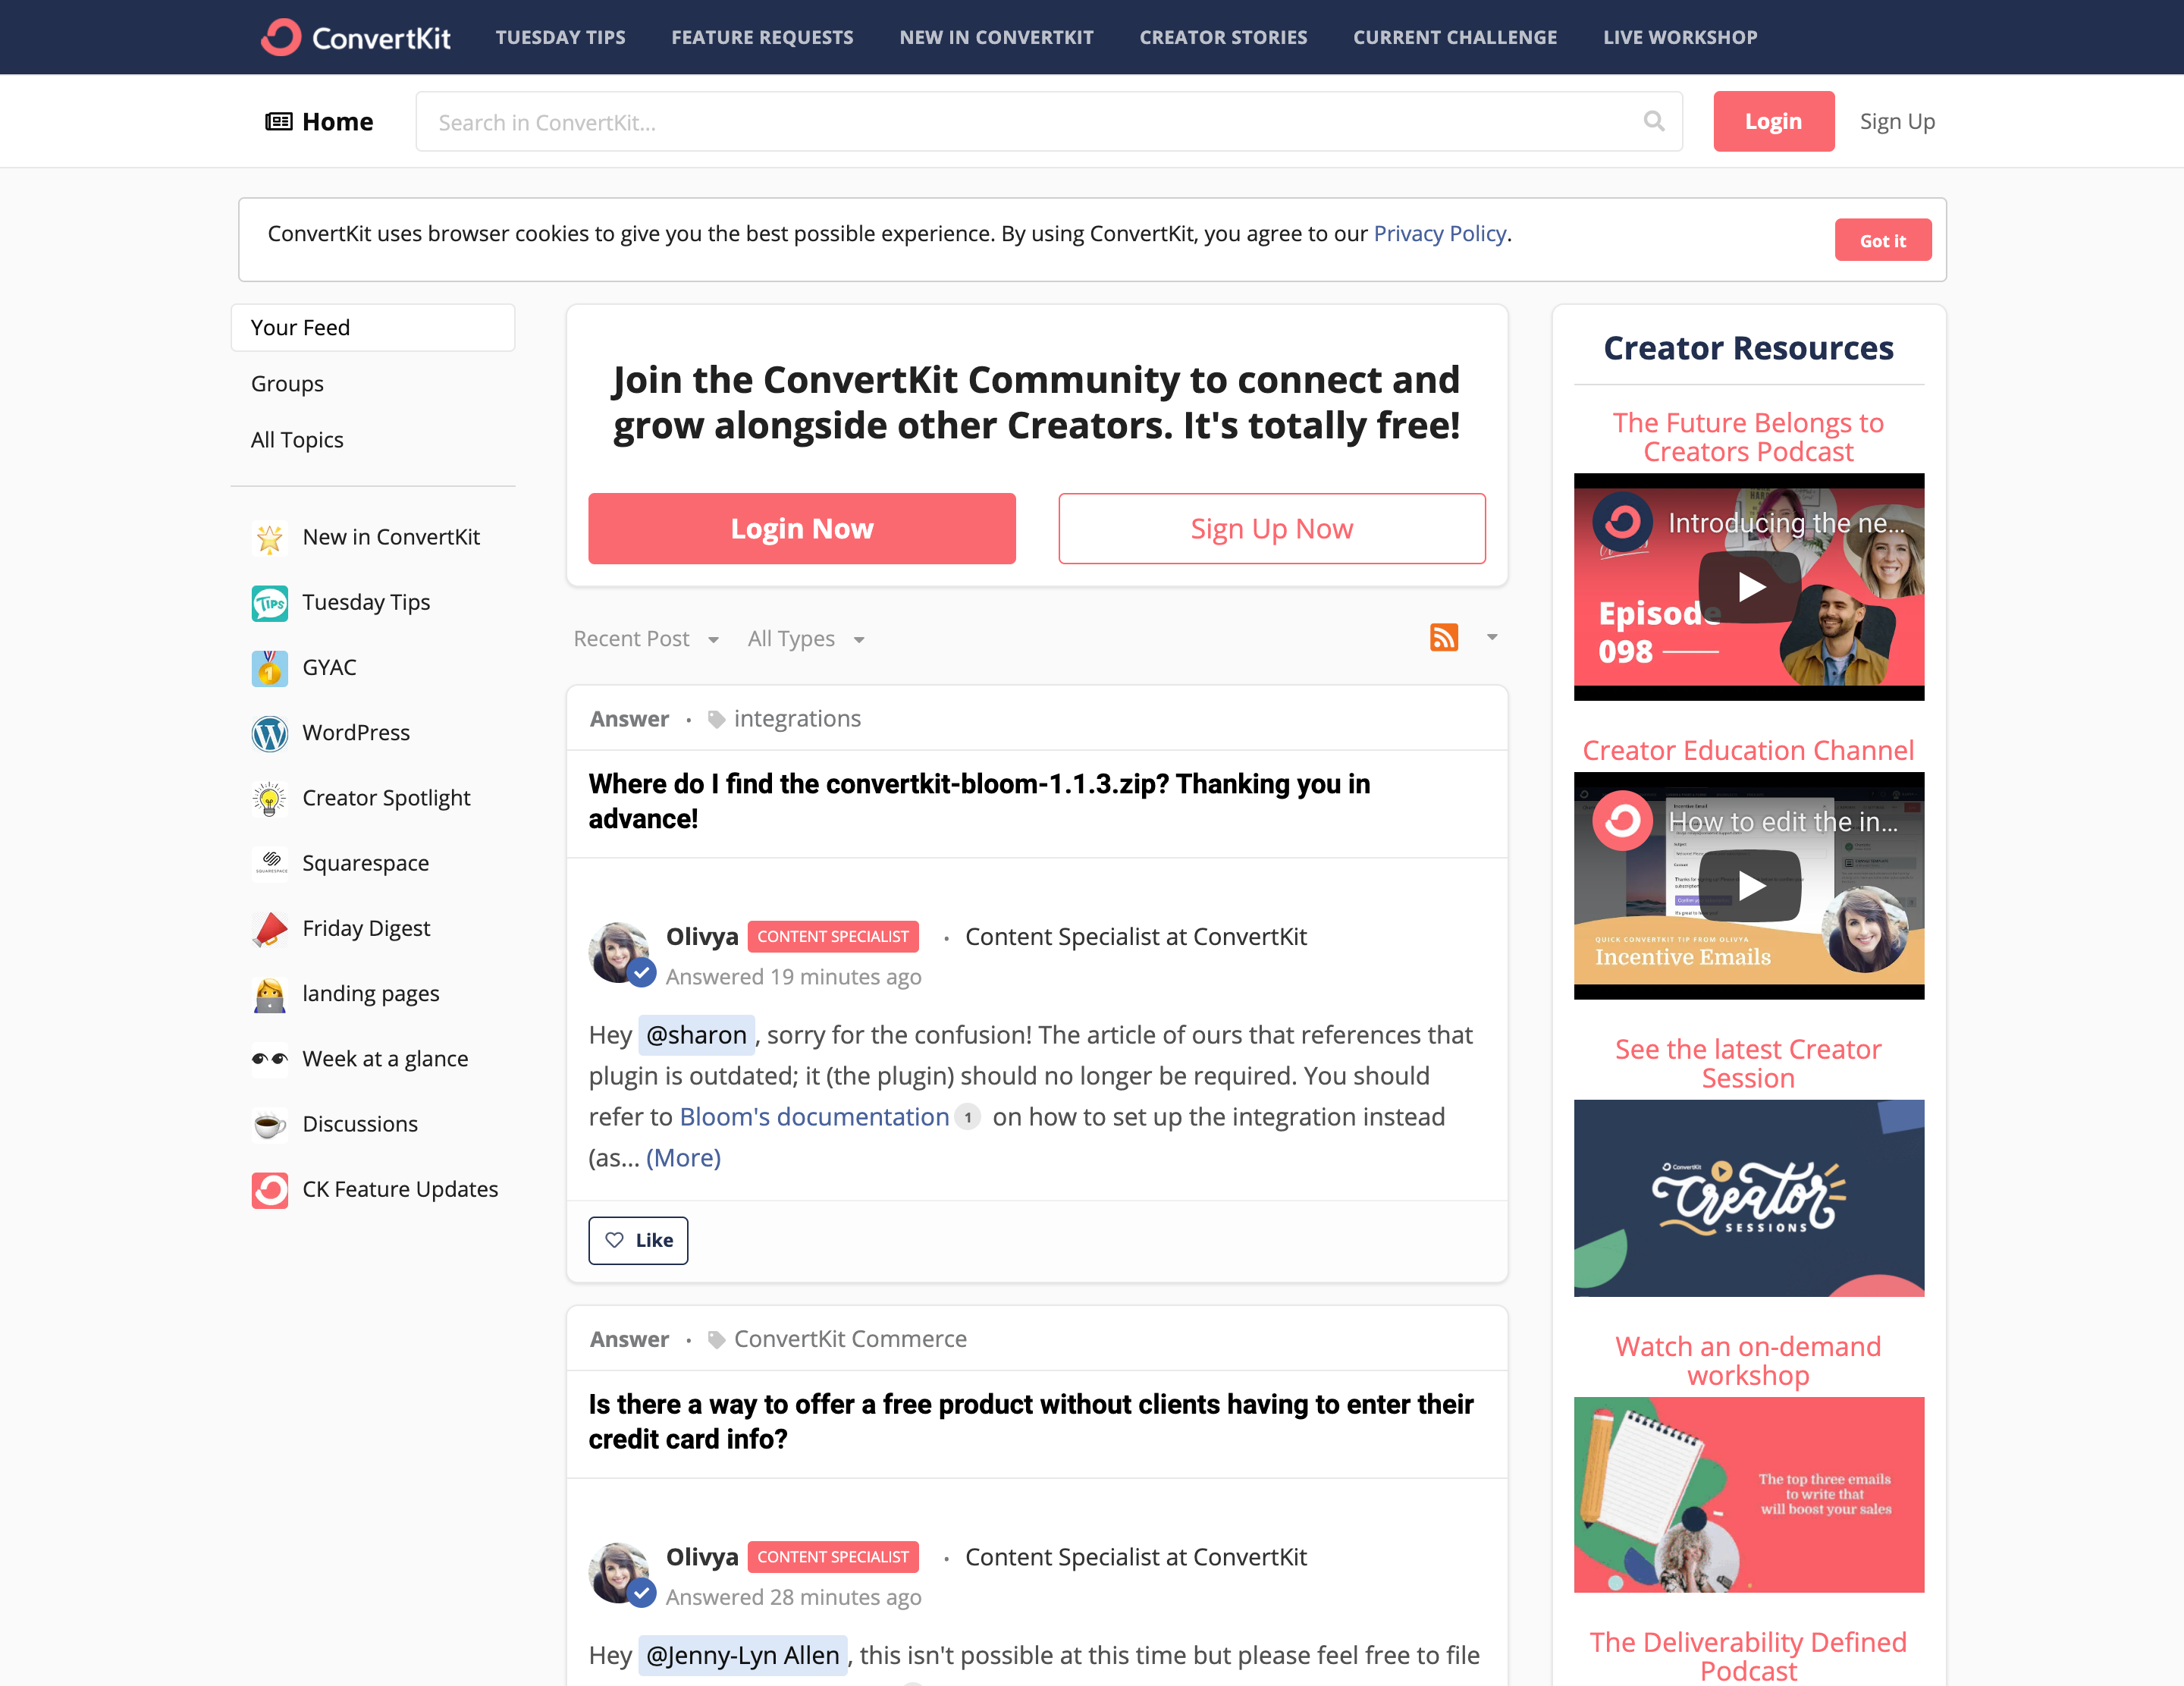 ConvertKit's customer community enables members to post content, access key resources, learn from peers, request answers, comment, upvote, and build networks.